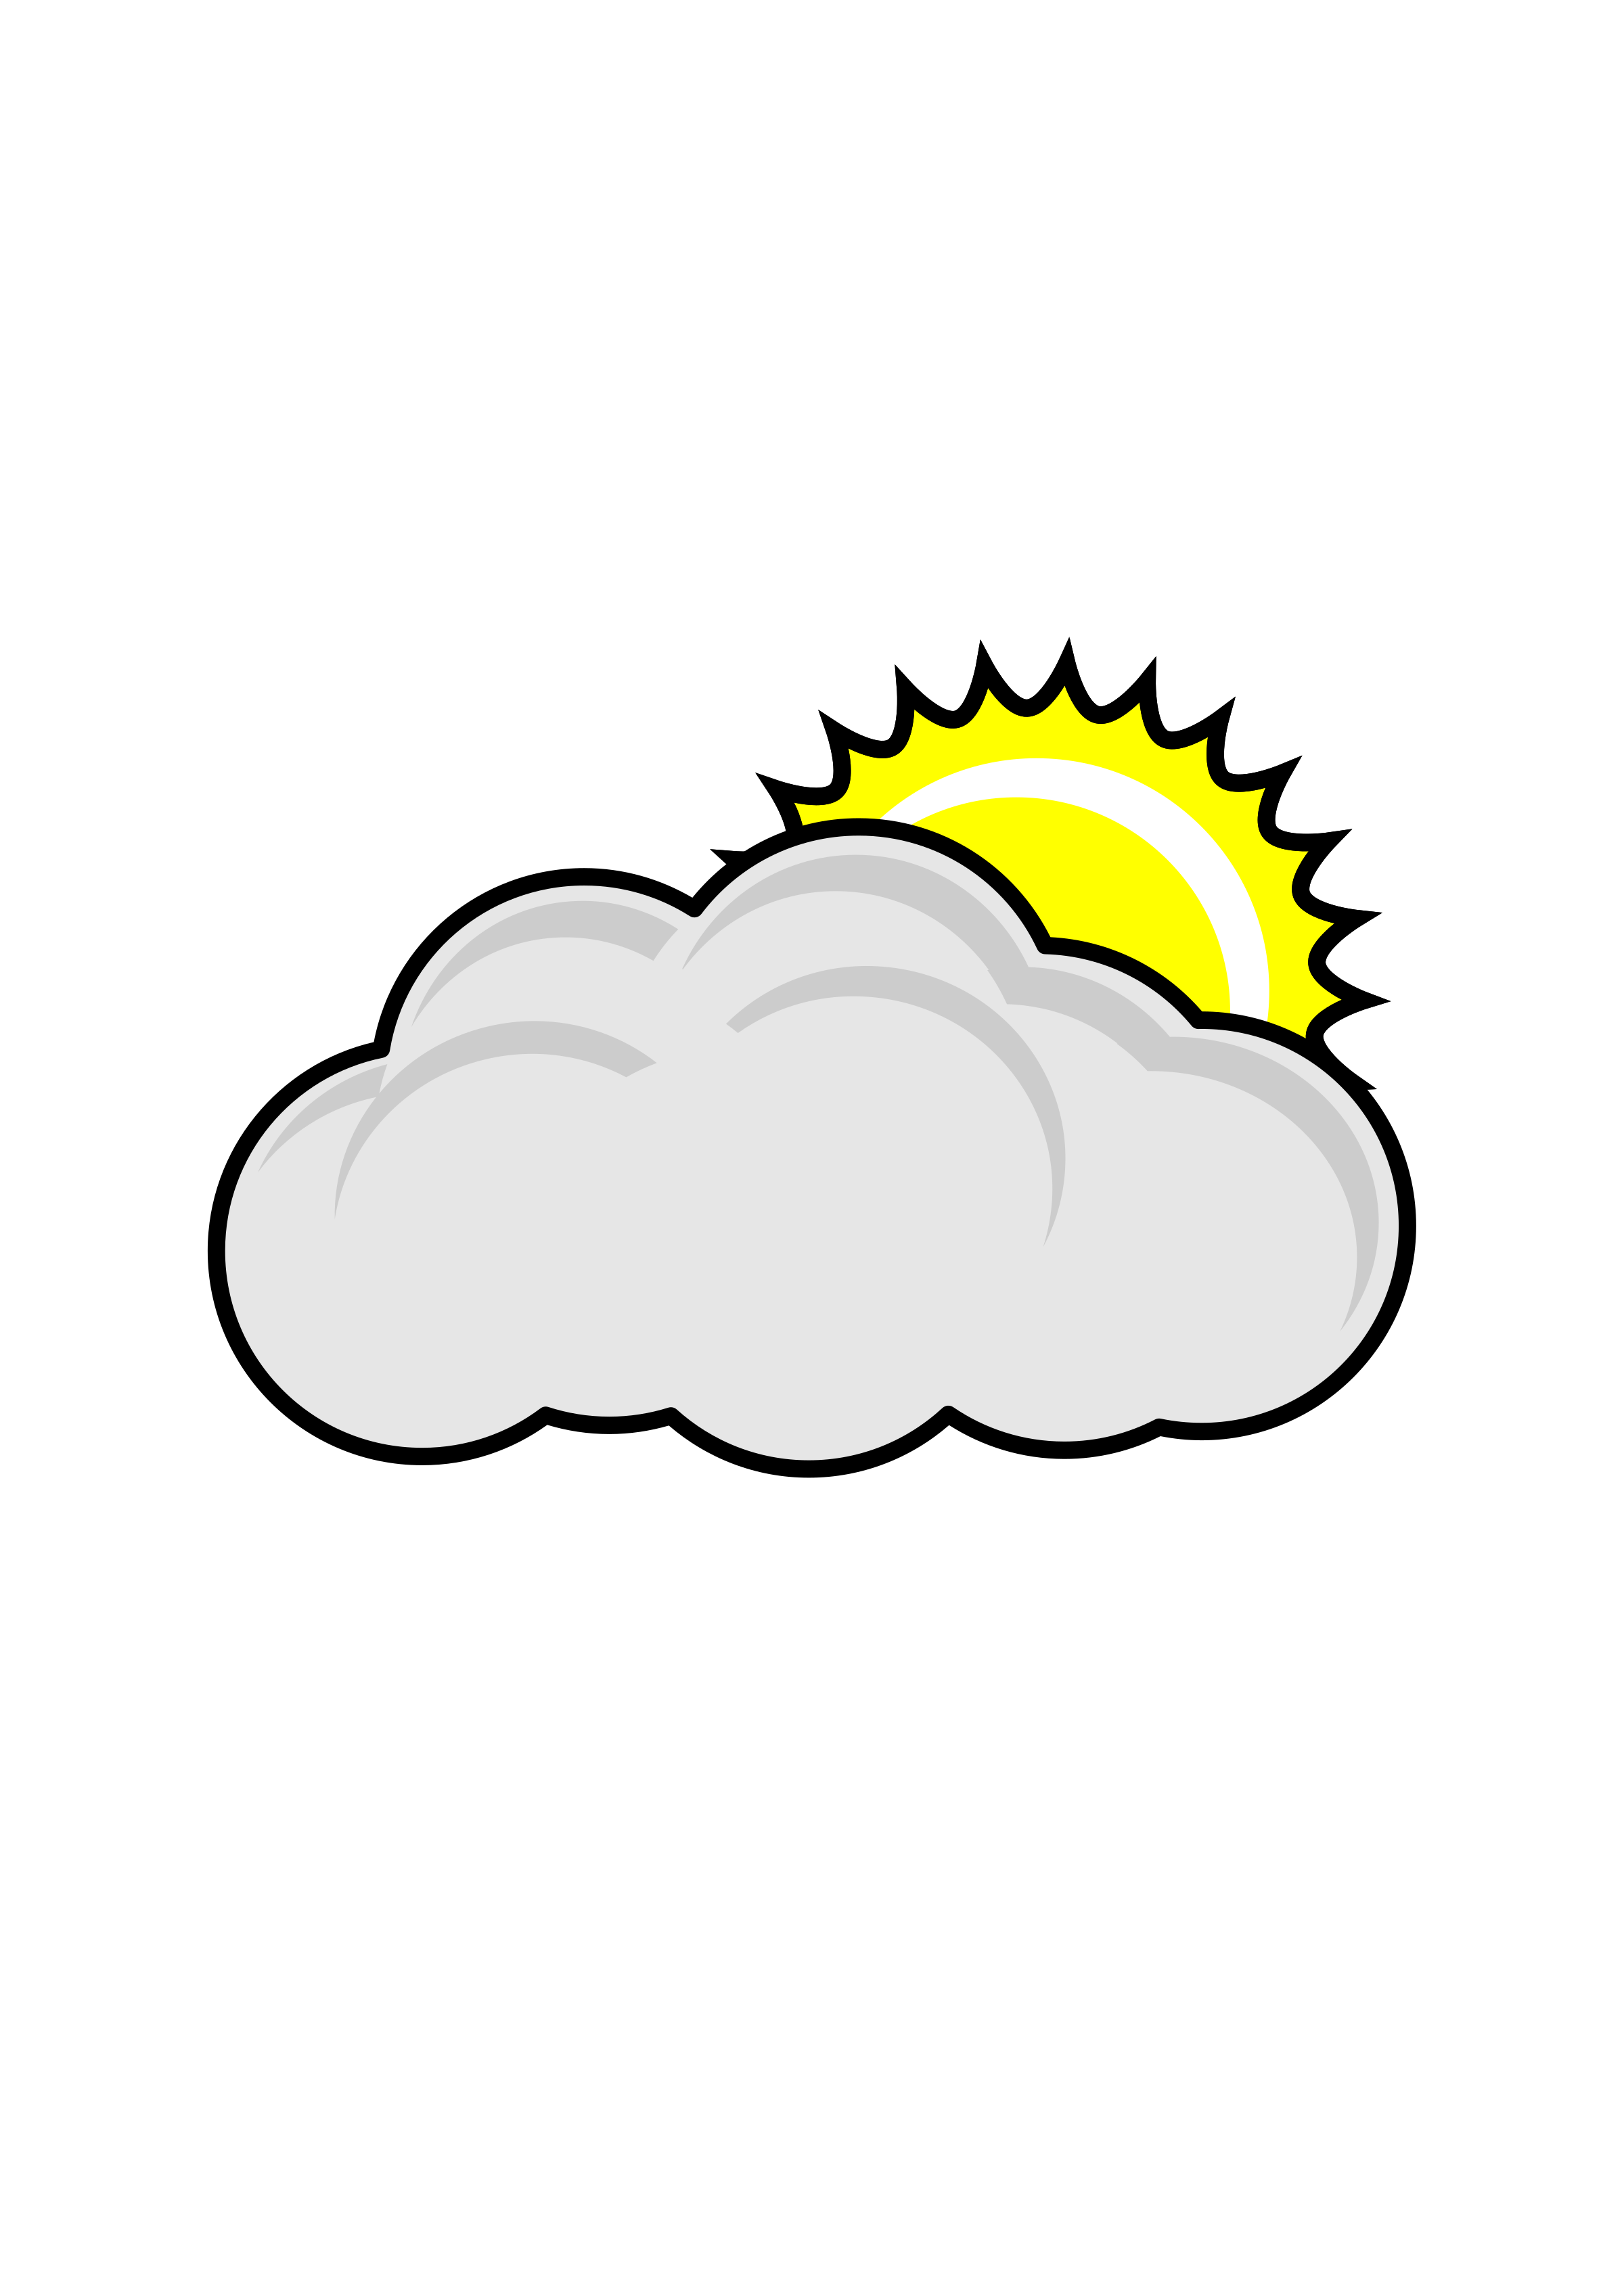 Sunny clipart partly. Cloudy icons png free